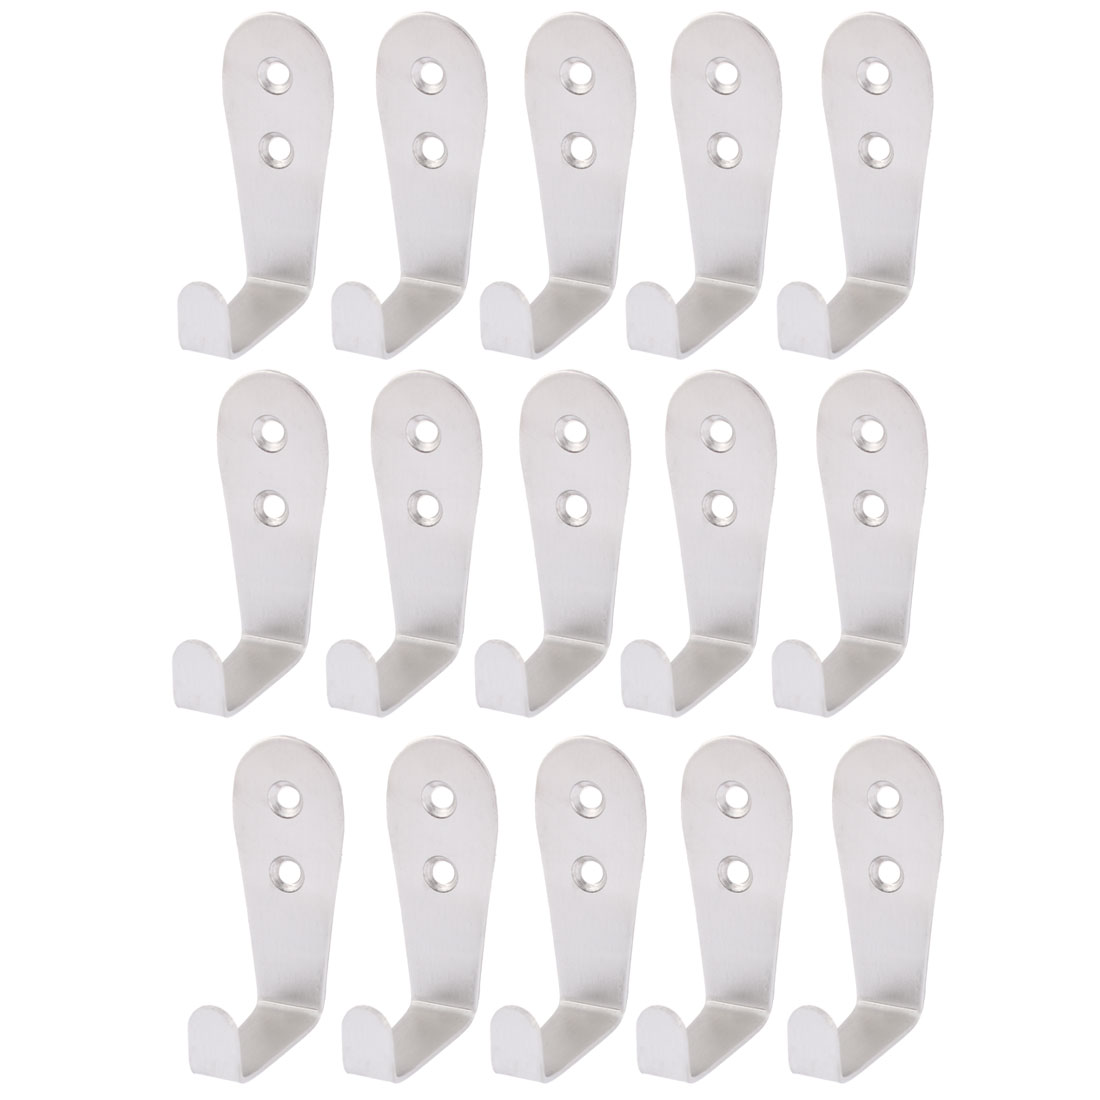 Home Kitchen Wall Mounted Clothes Coat Bag Hook Hanger Holder 15 Pcs